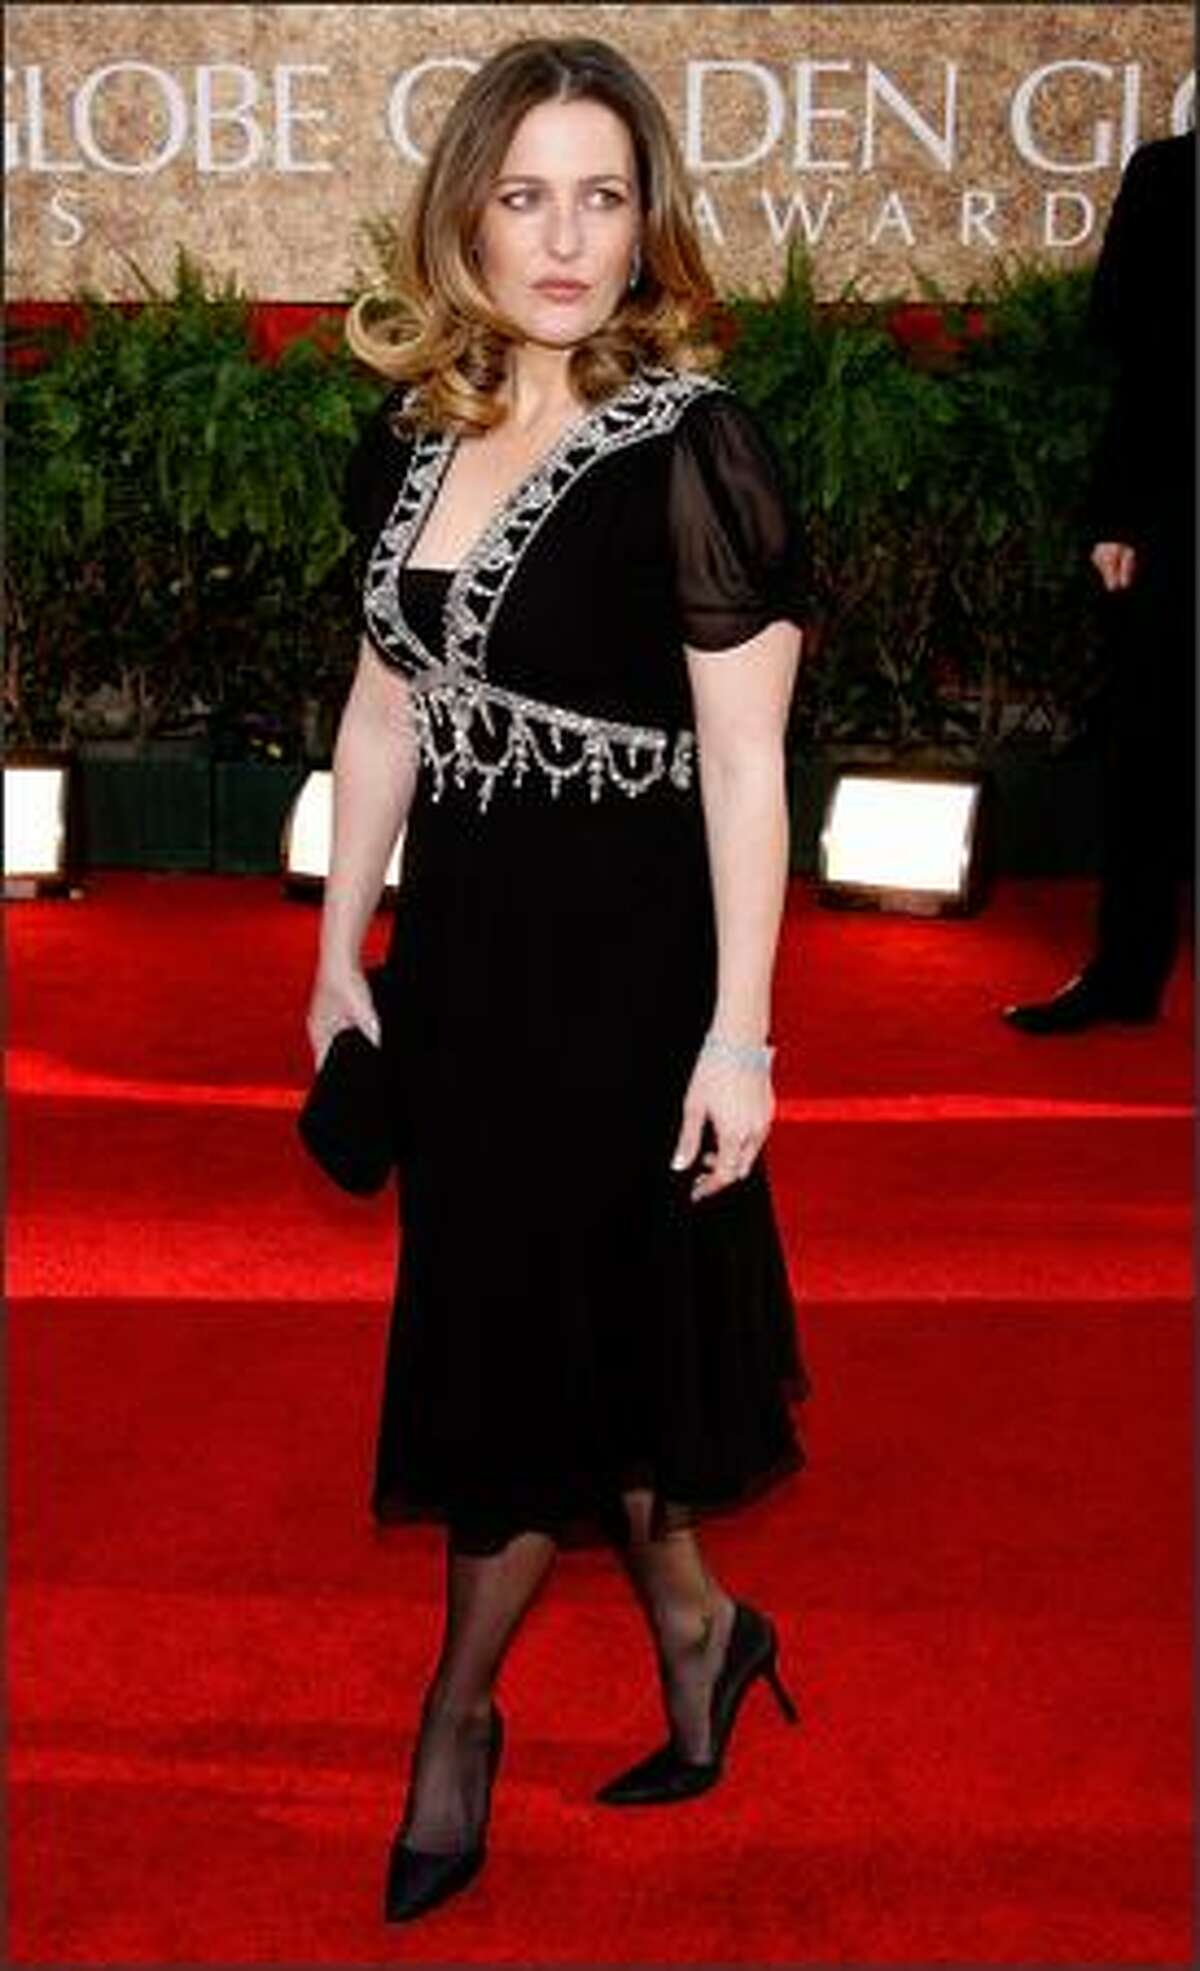 Actress Gillian Anderson arrives at the 64th Annual Golden Globe Awards on Jan. 15, 2007.